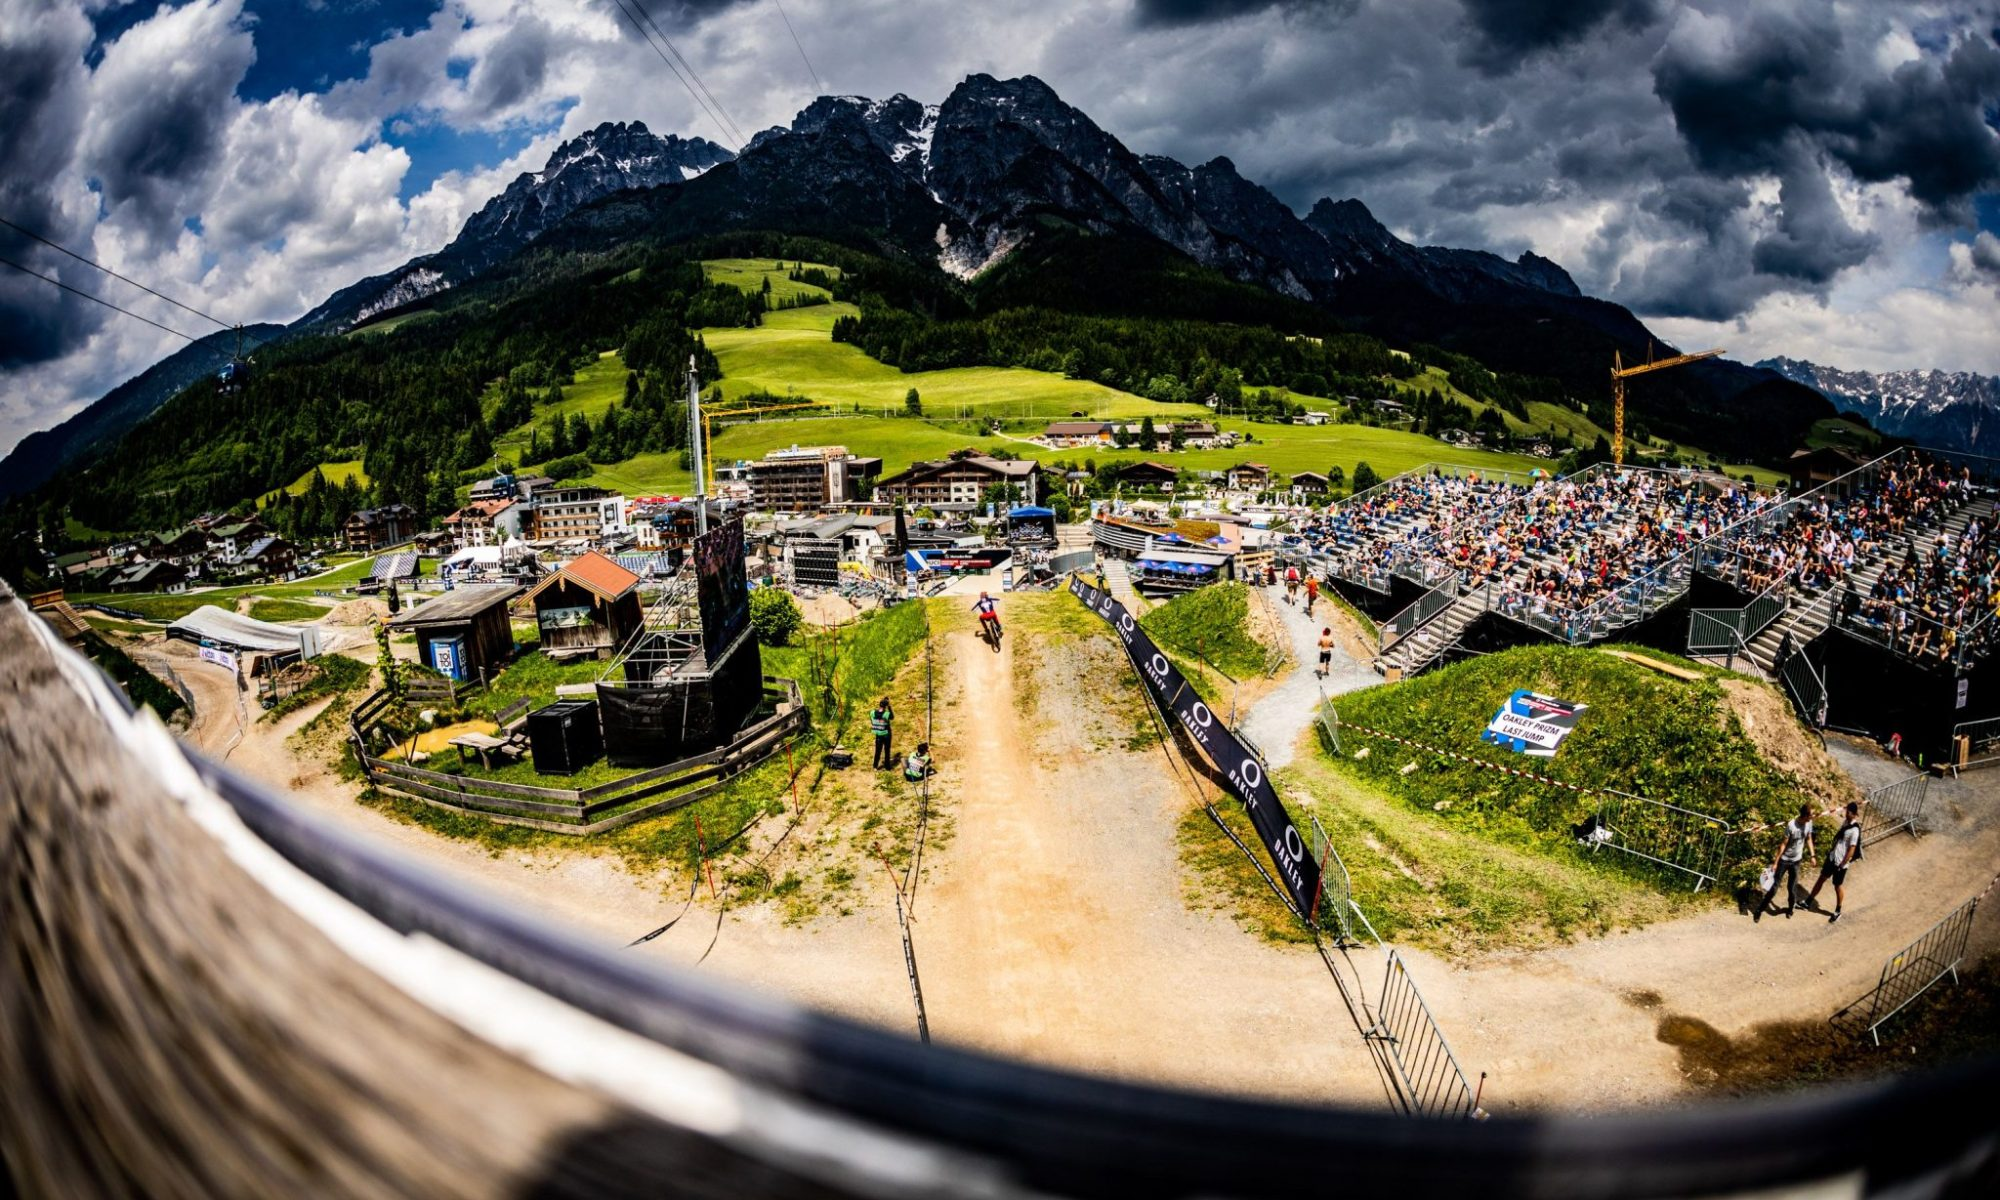 Finish line at first World Cup race of 2021 in Leogang, Austria.